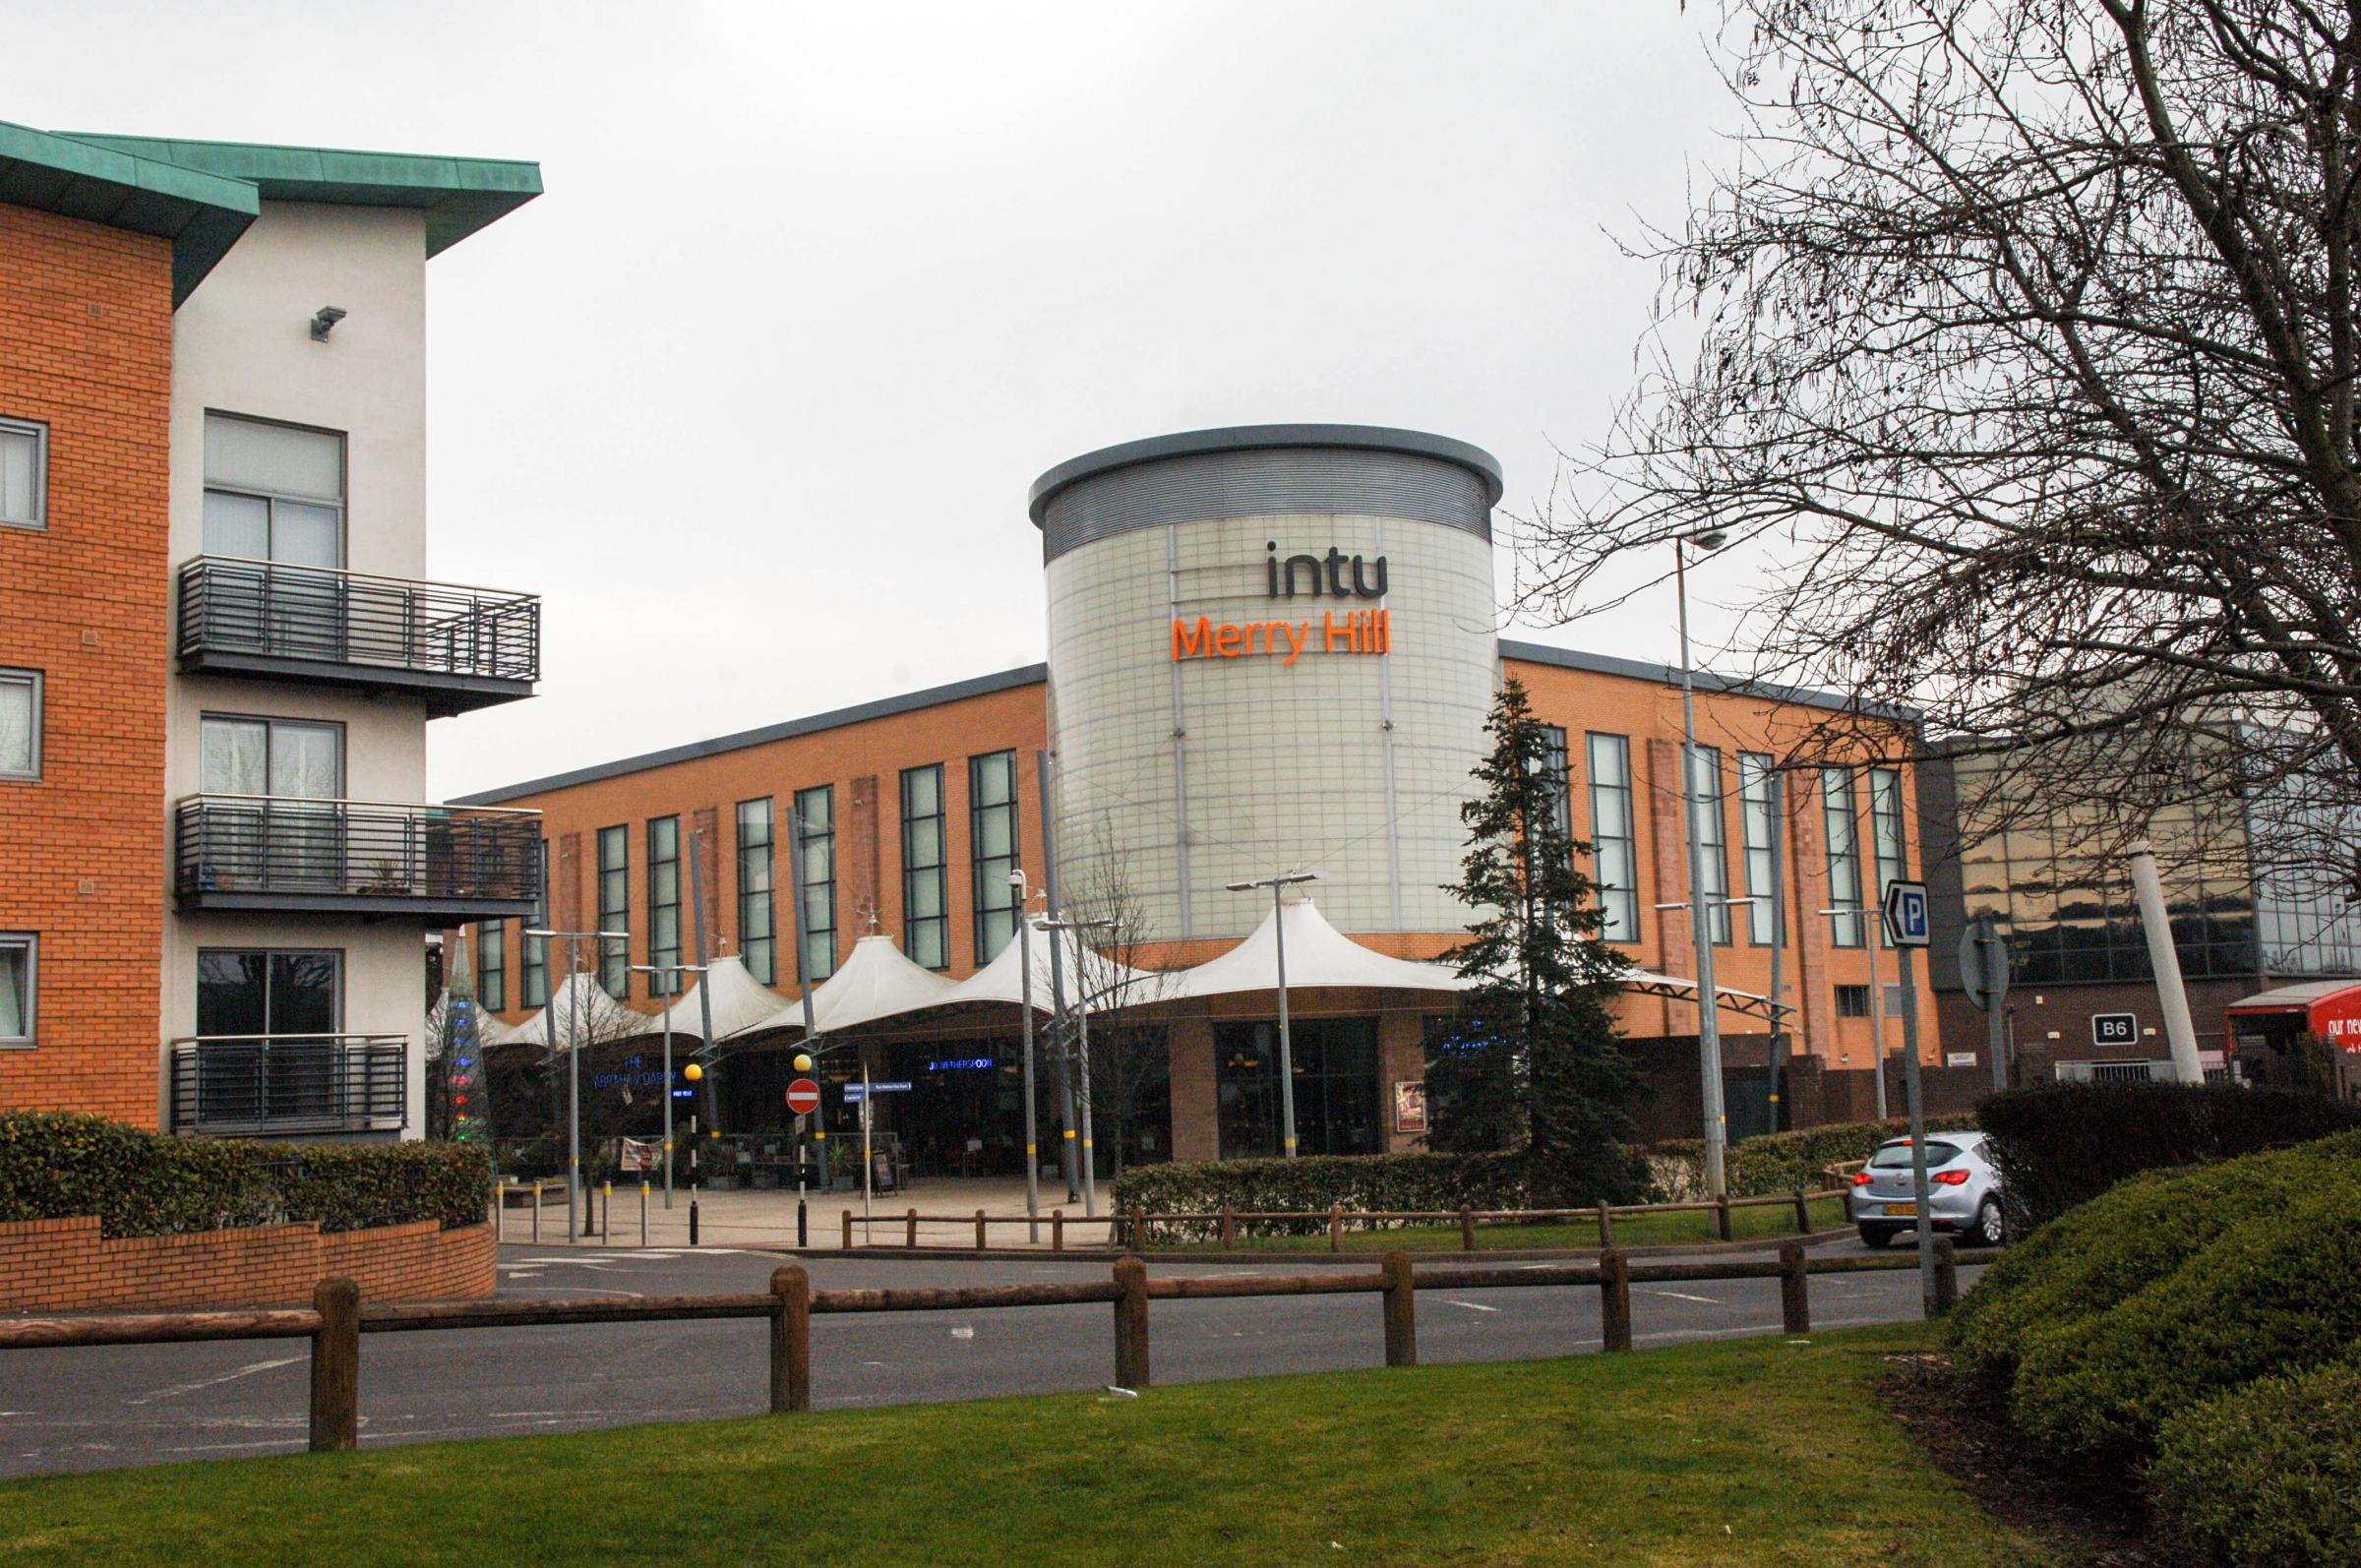 Dementia Action Week to be celebrated at Merry Hill